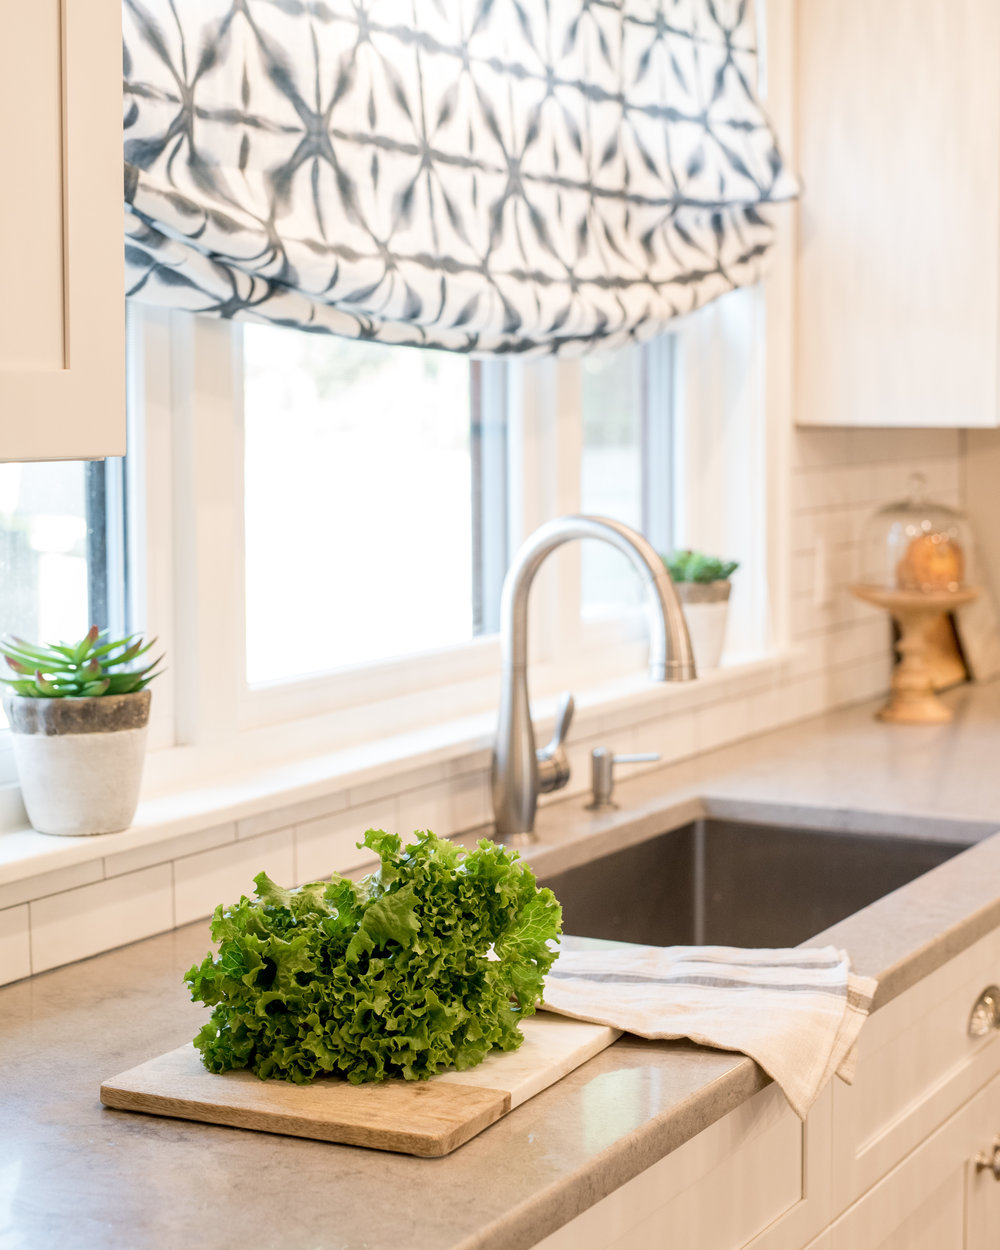 Interior Design Newton Massachusetts decor interior designer Gina Baran Kitchen Design